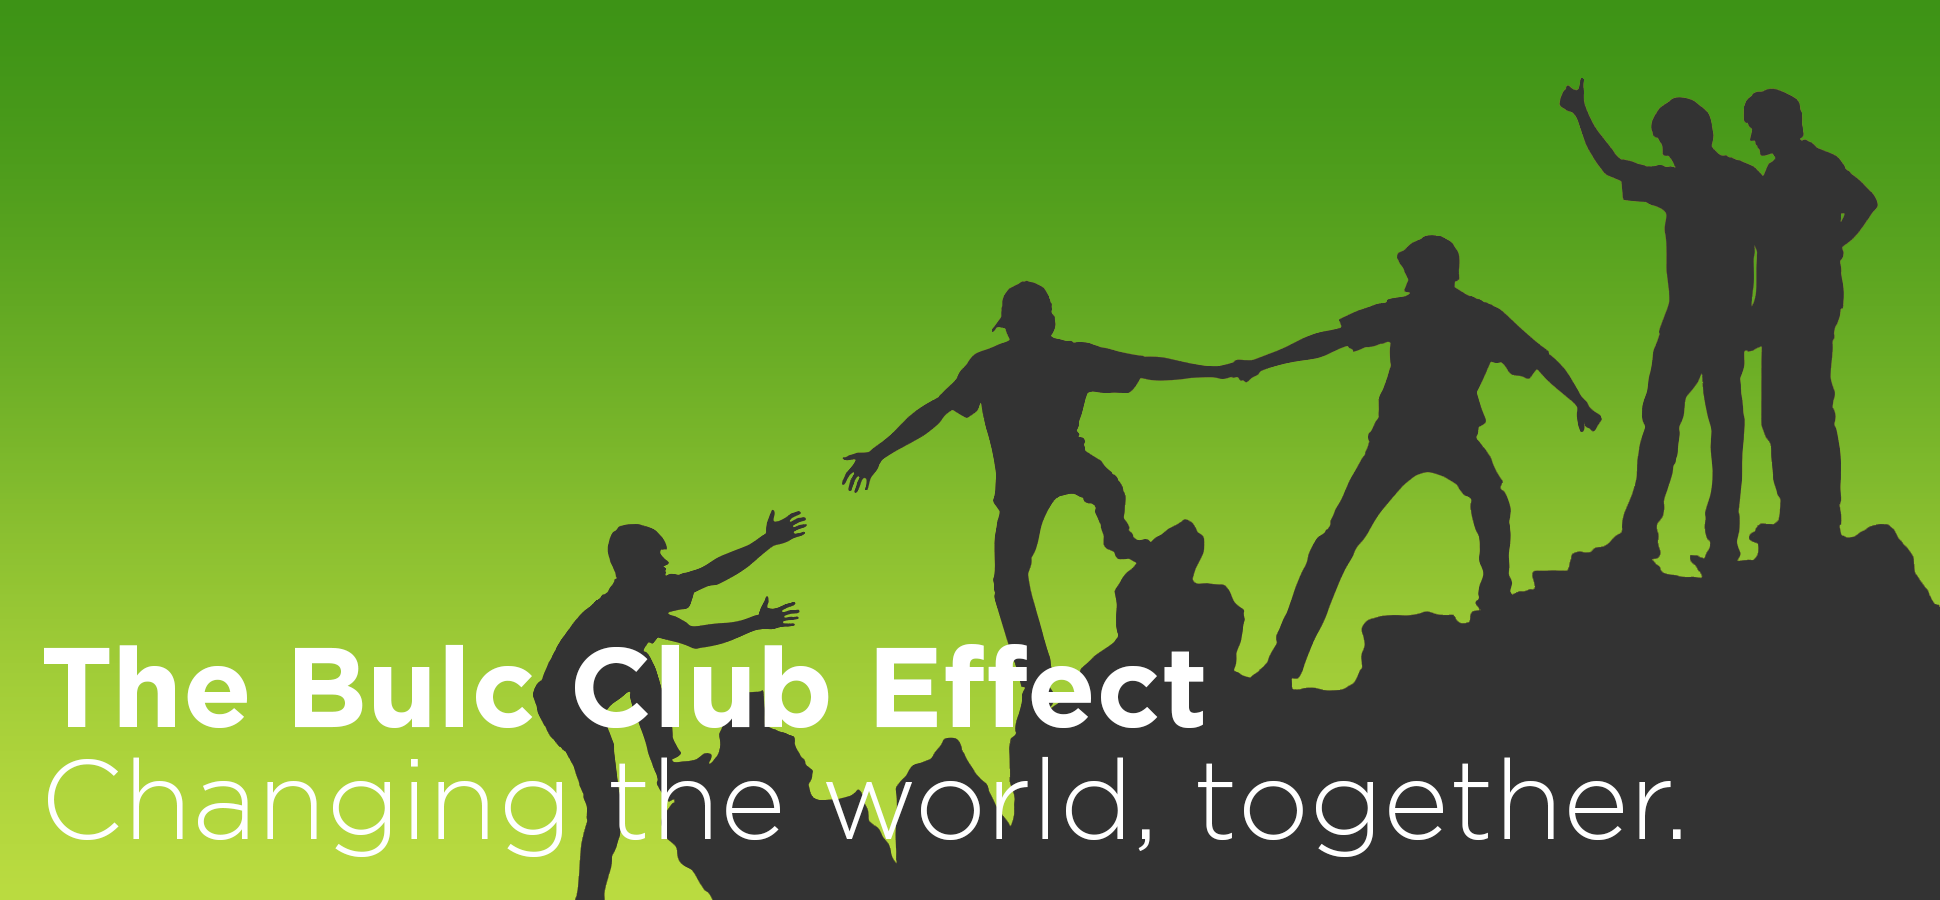 The Bulc Club Effect